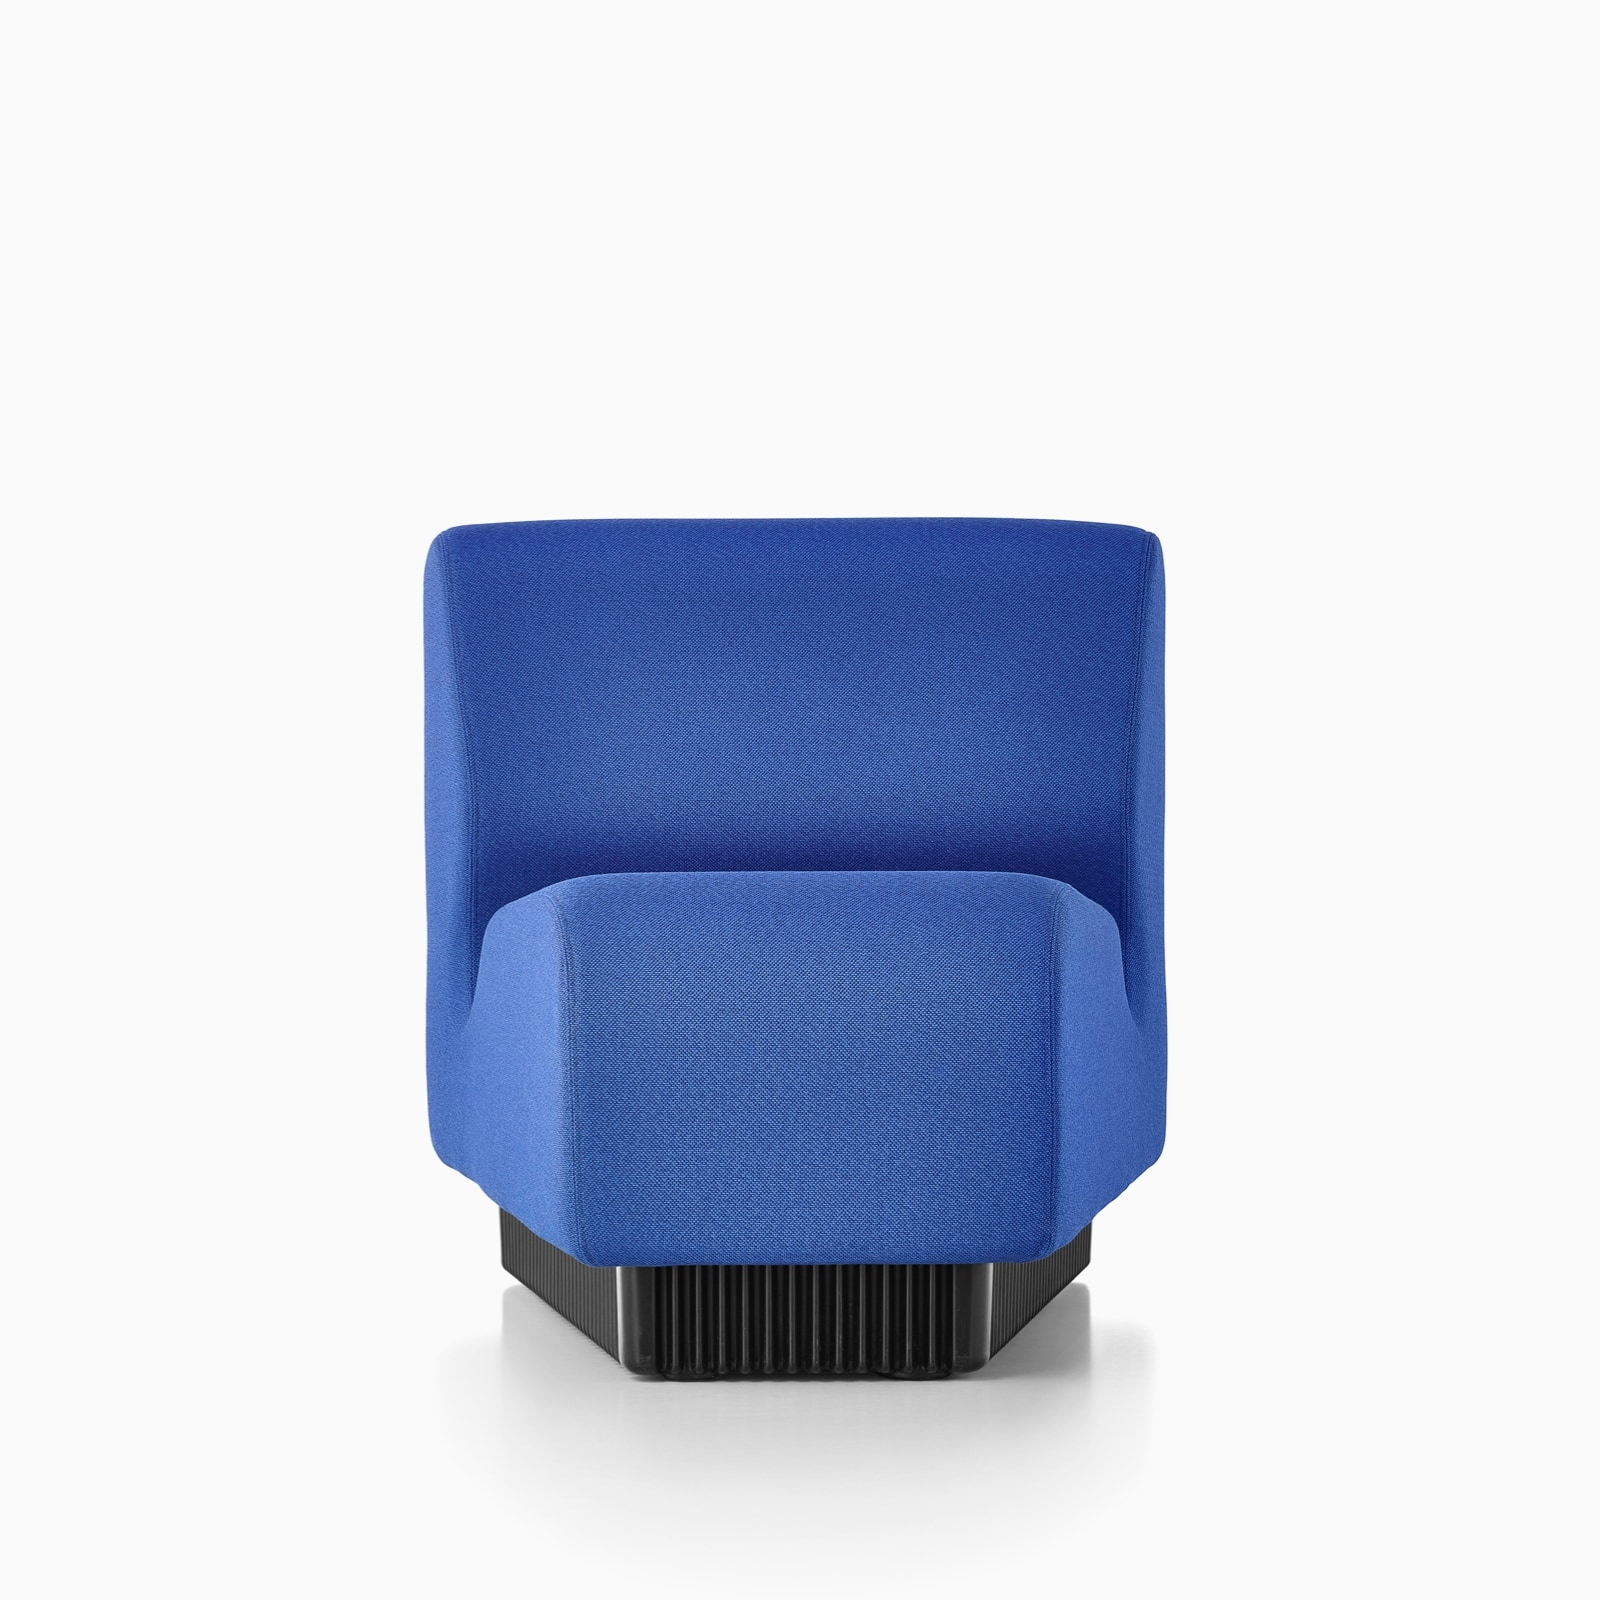 A front view of one unit of Chadwick Modular Seating in blue.